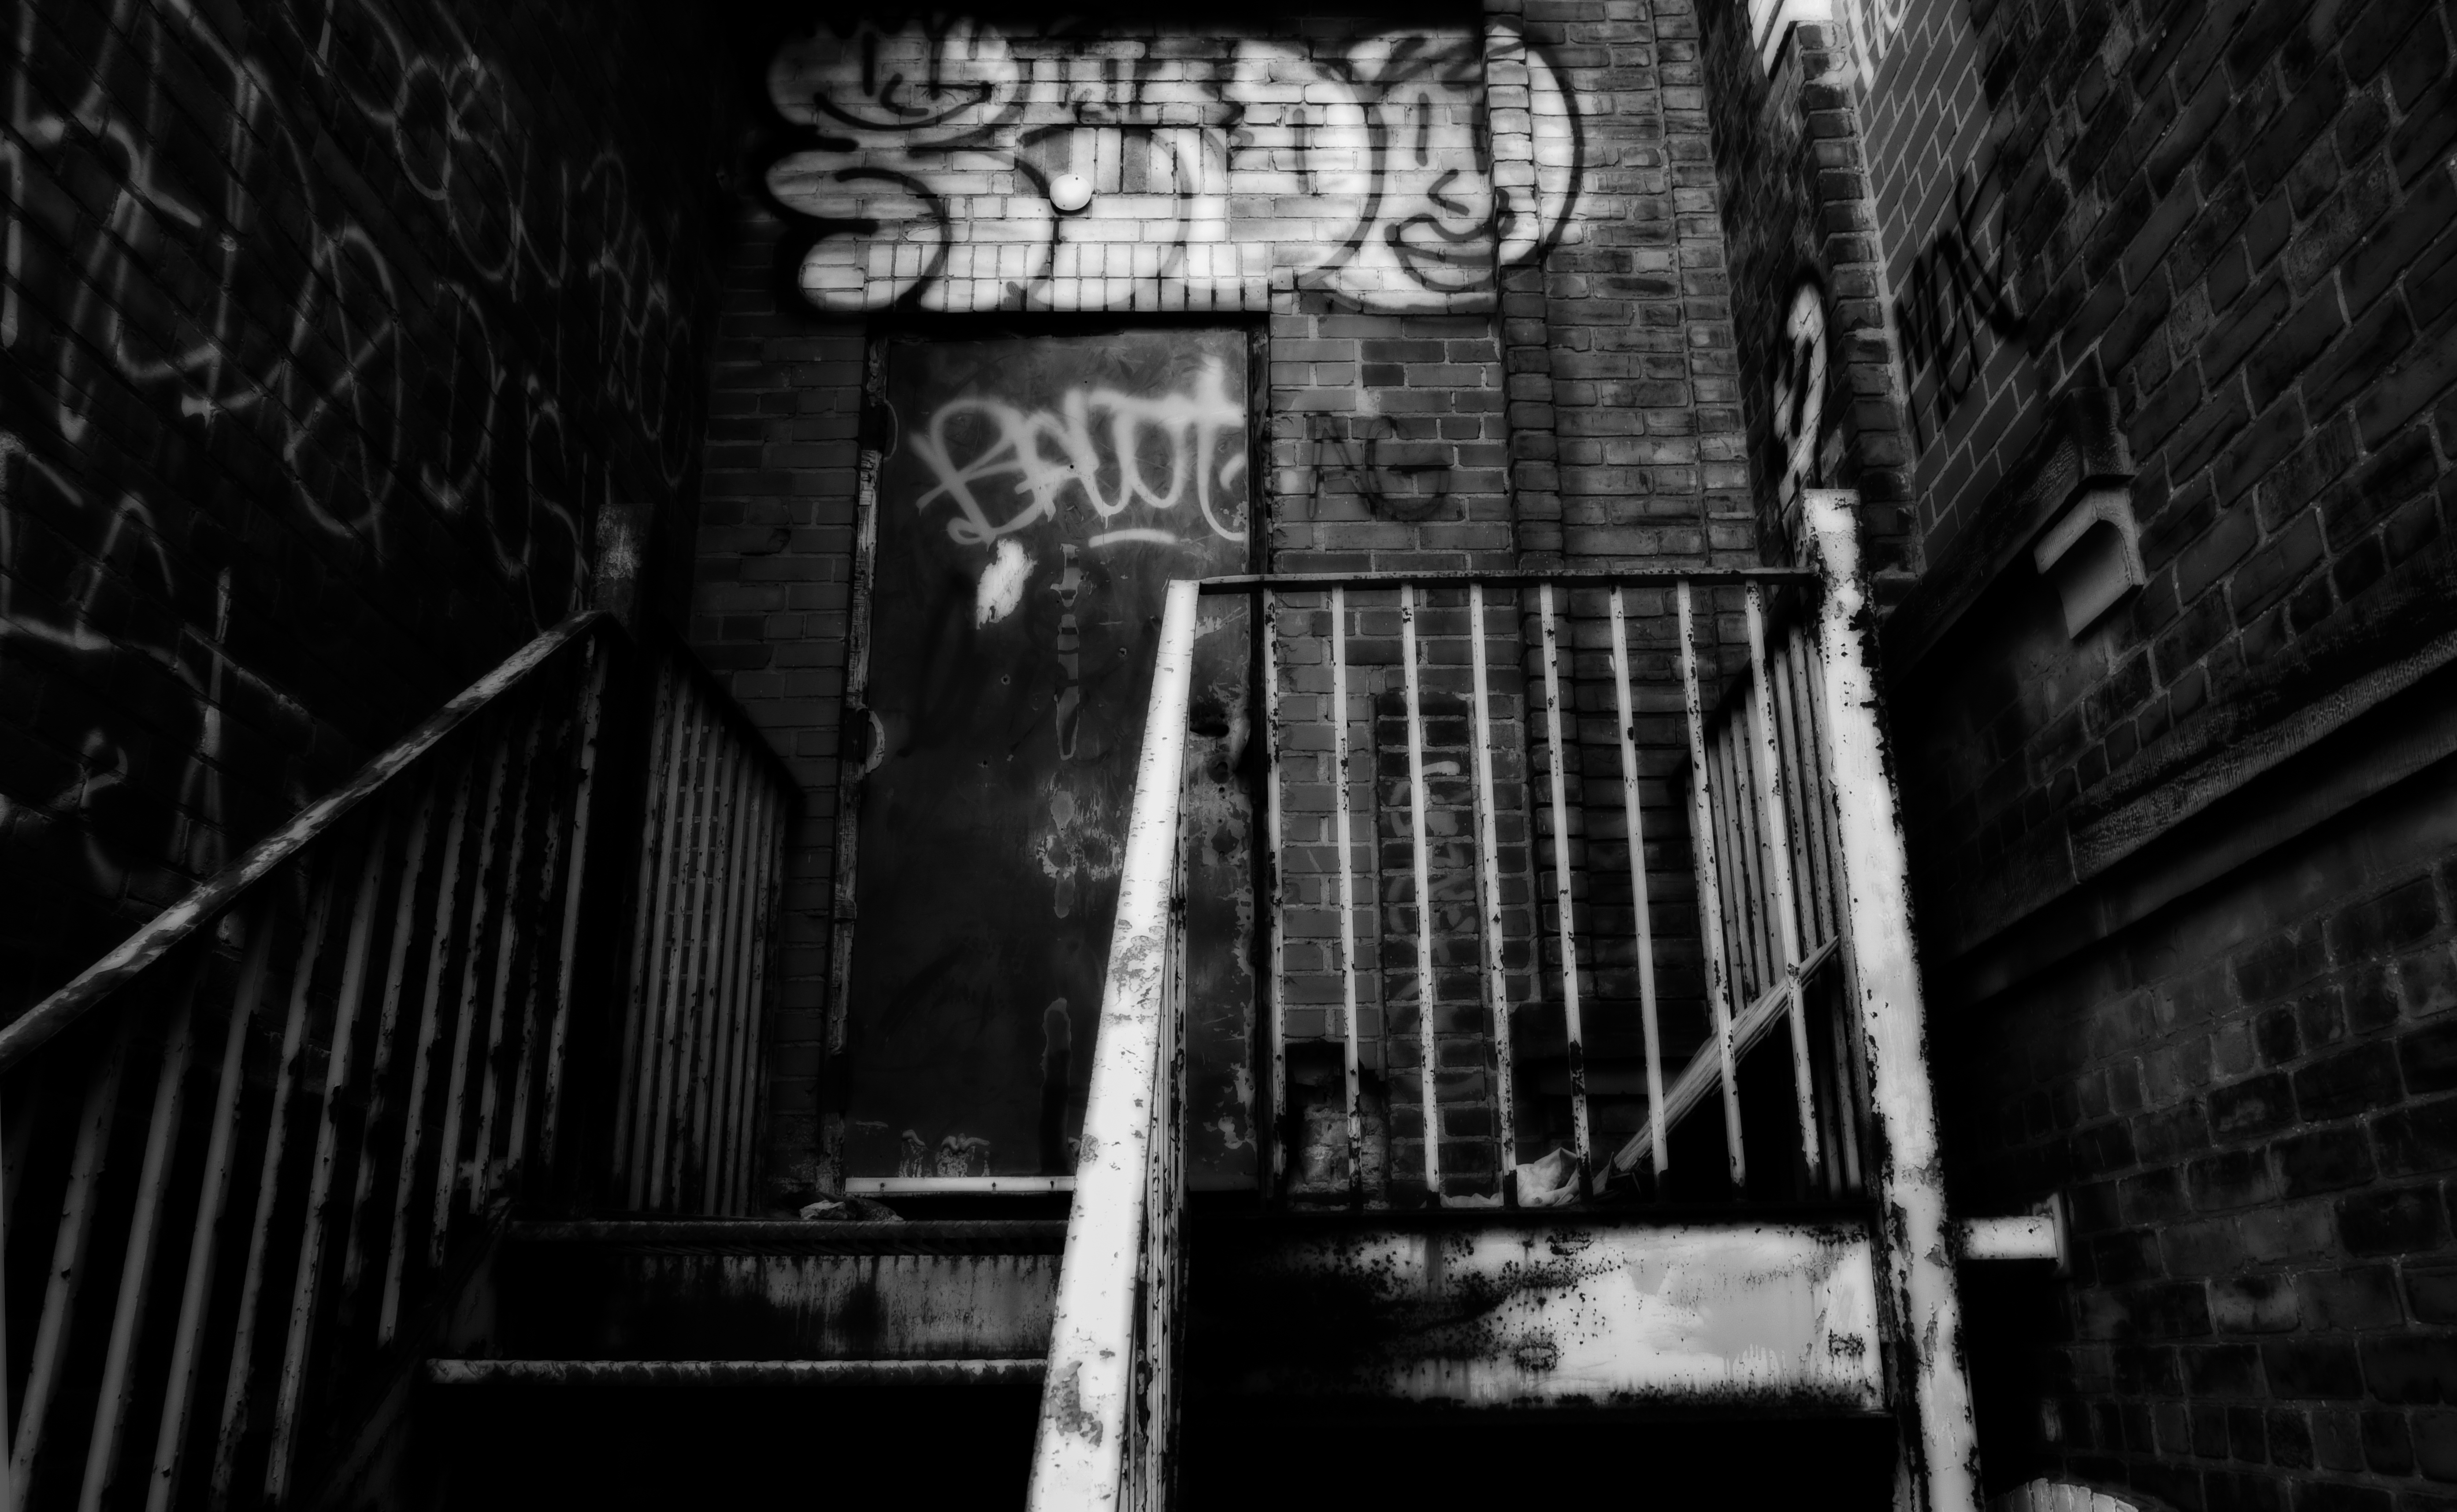 Escape - stairwell